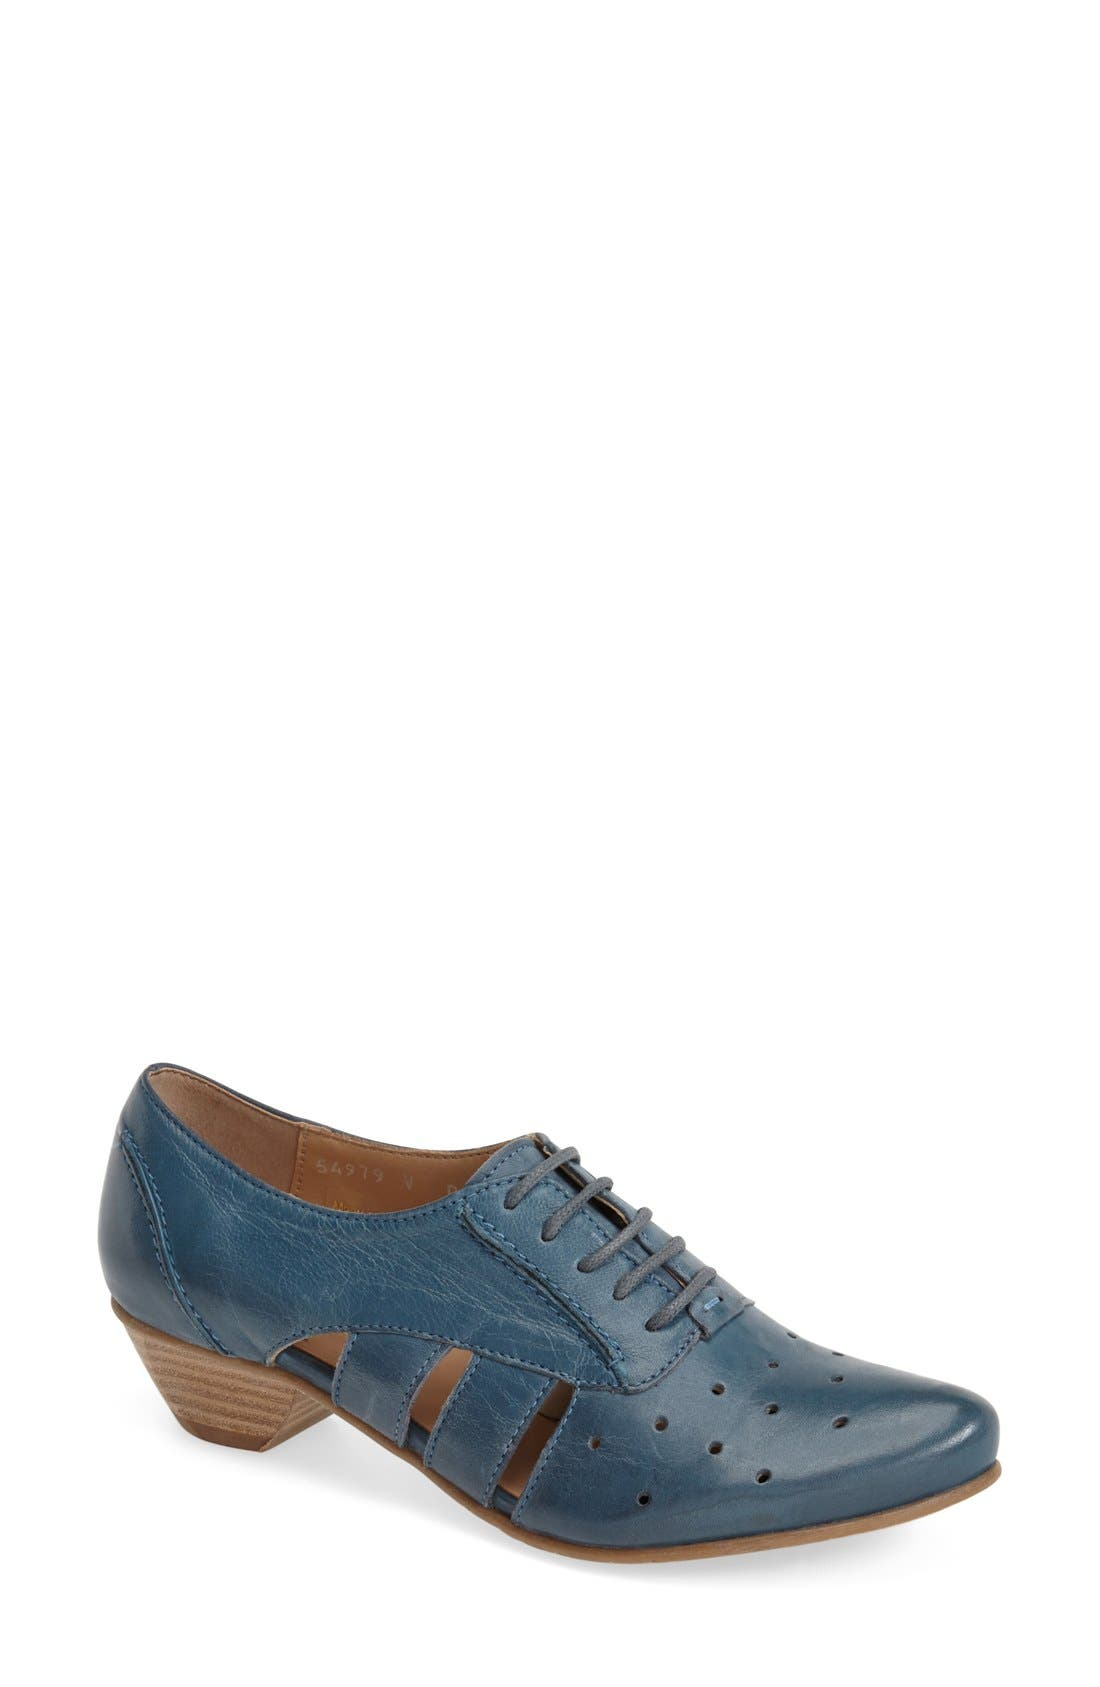 'VO92' Perforated Leather Pump,                             Main thumbnail 1, color,                             400